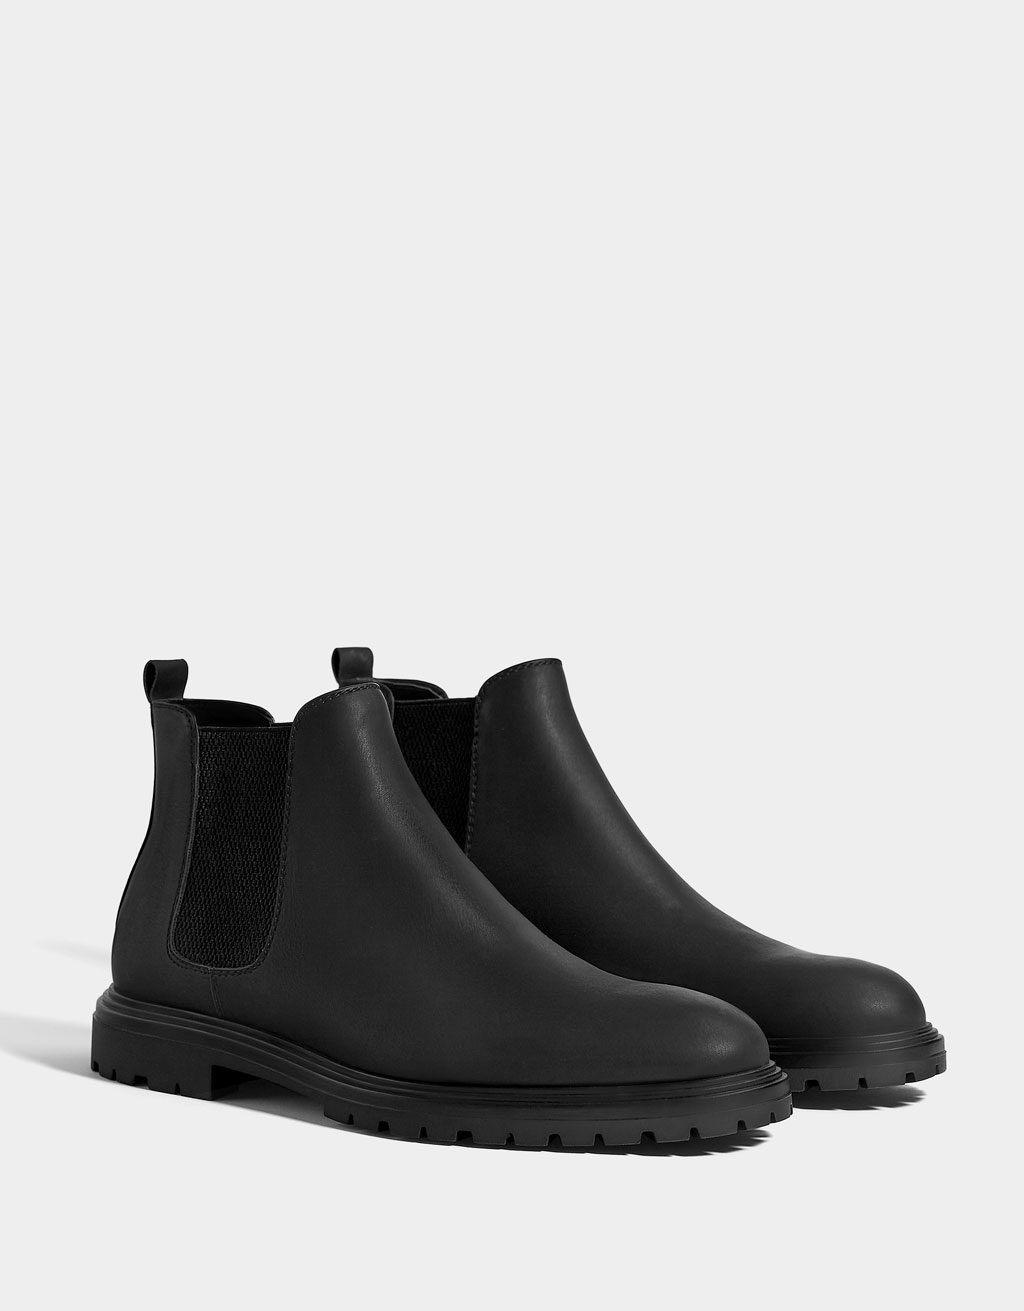 Men's dress stretch ankle boots